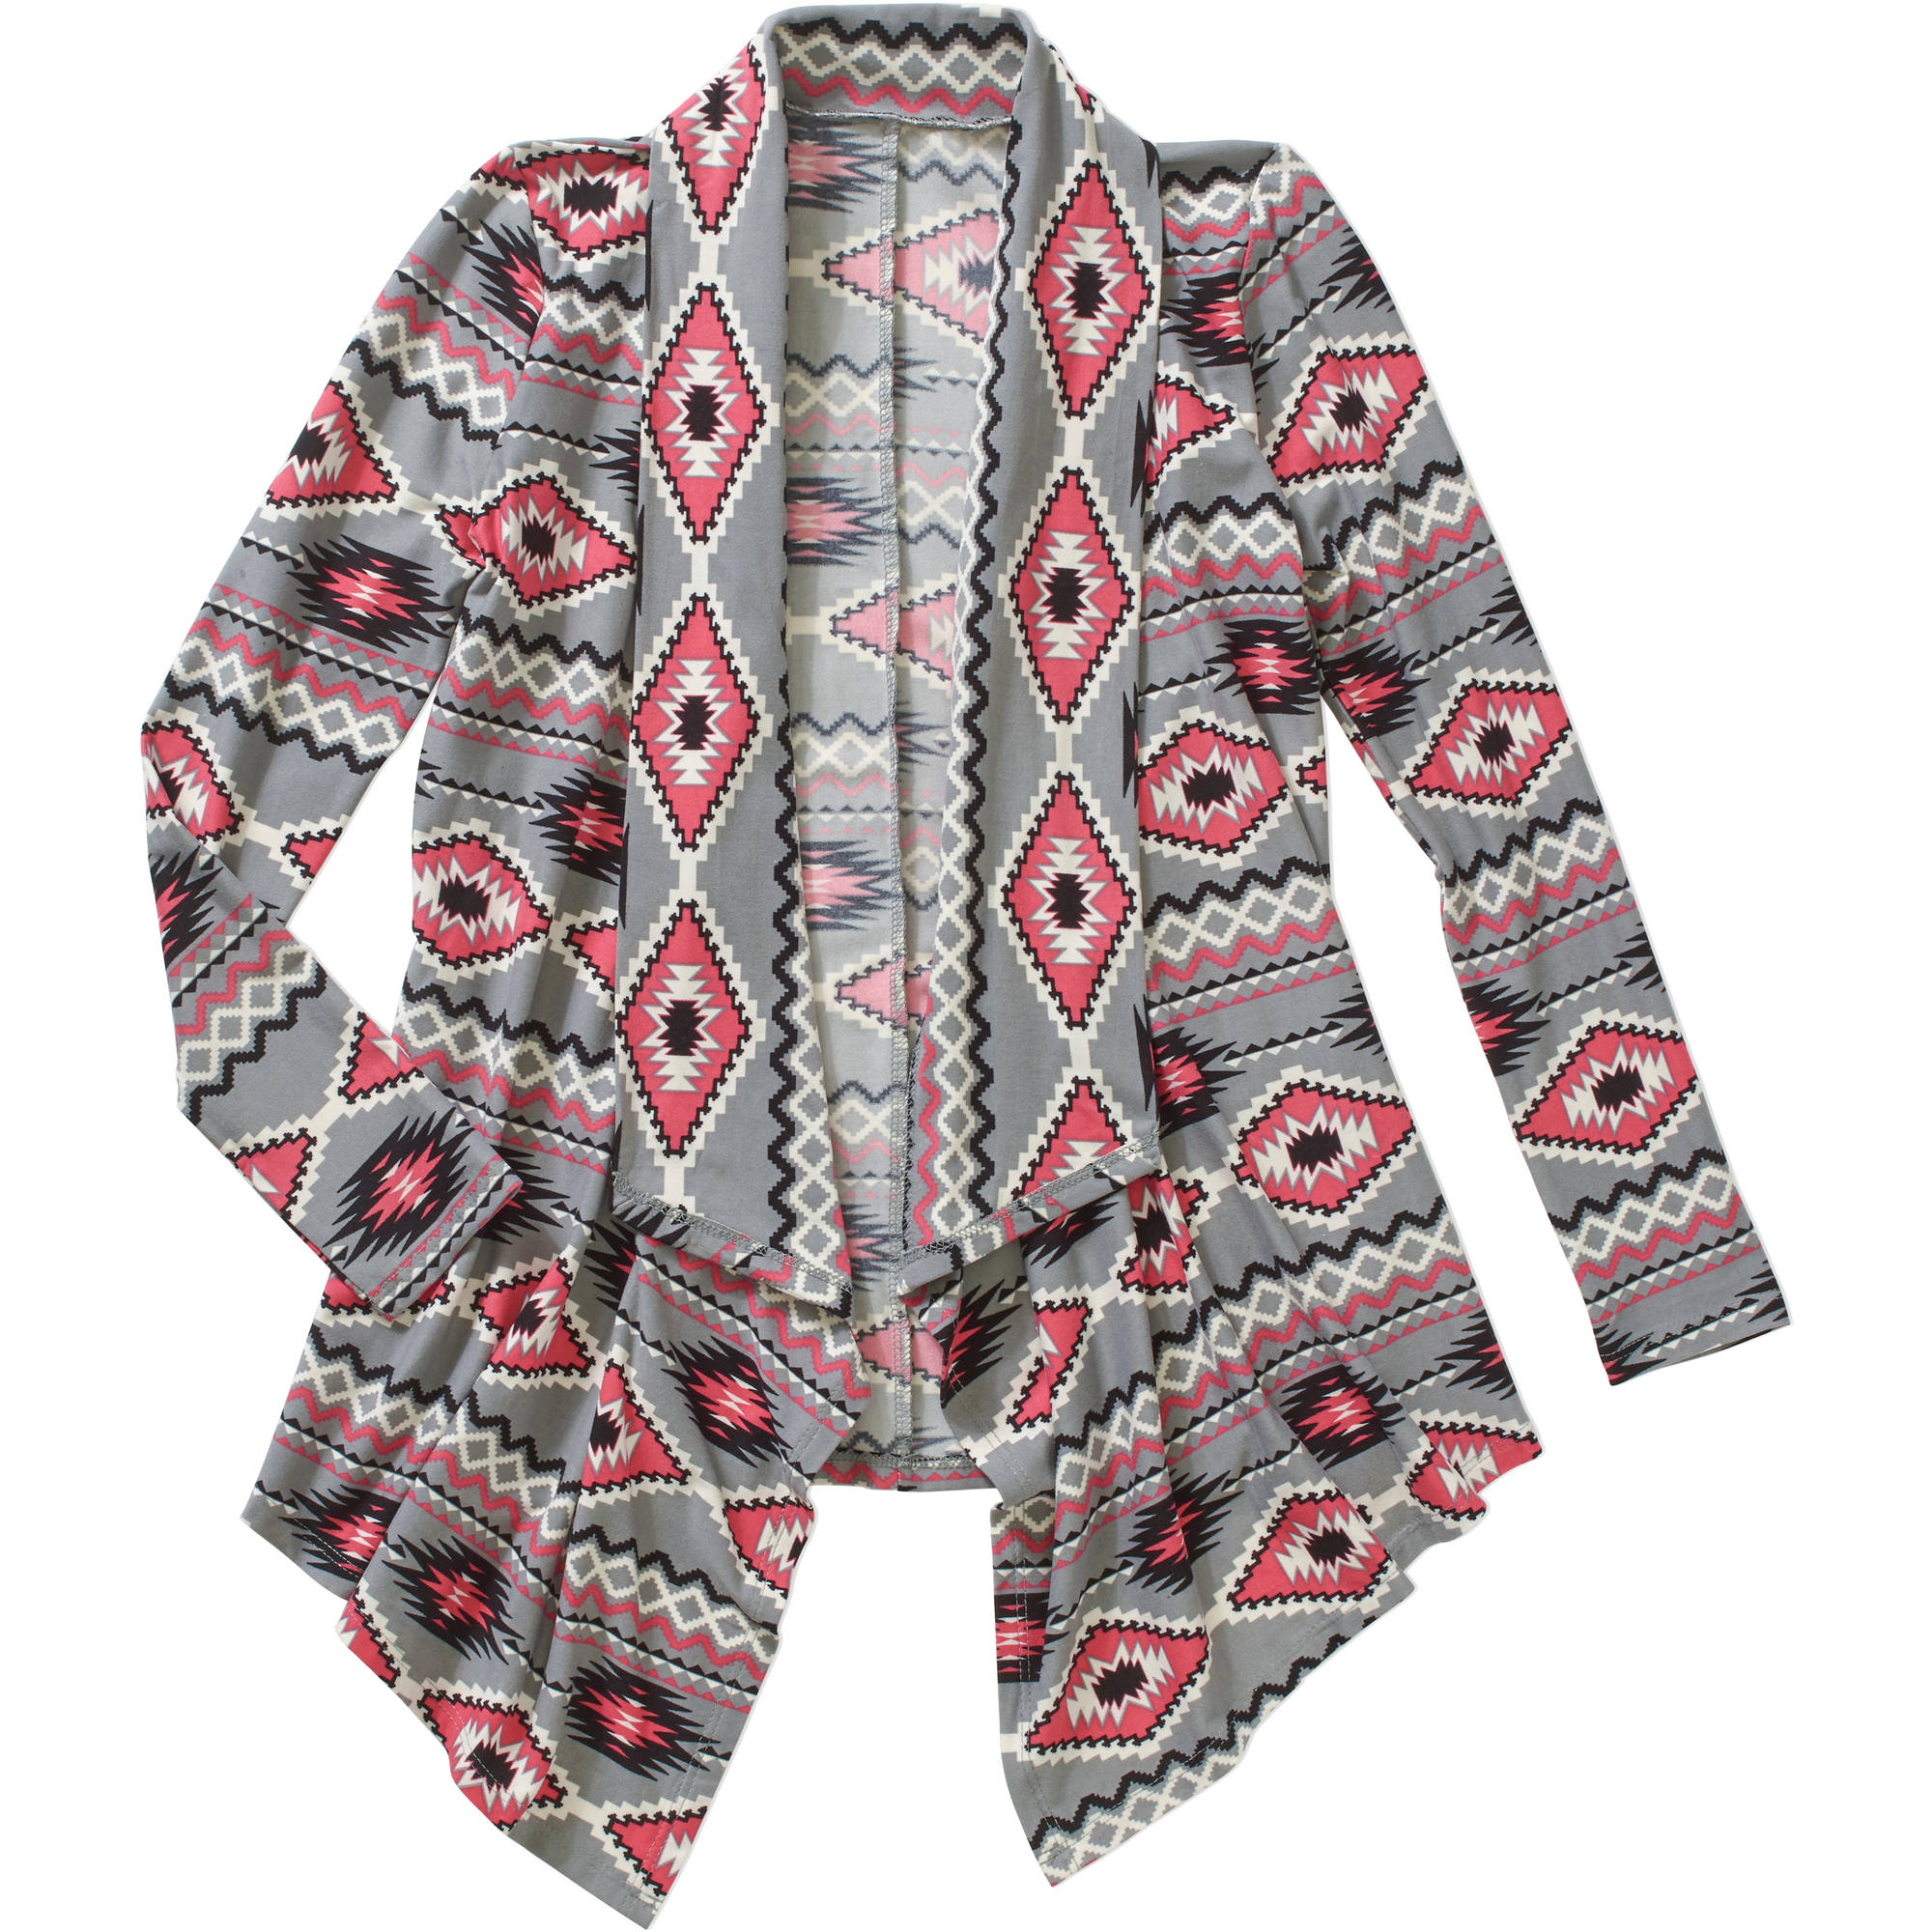 Girls' Super Soft Yummy Printed Cardigan